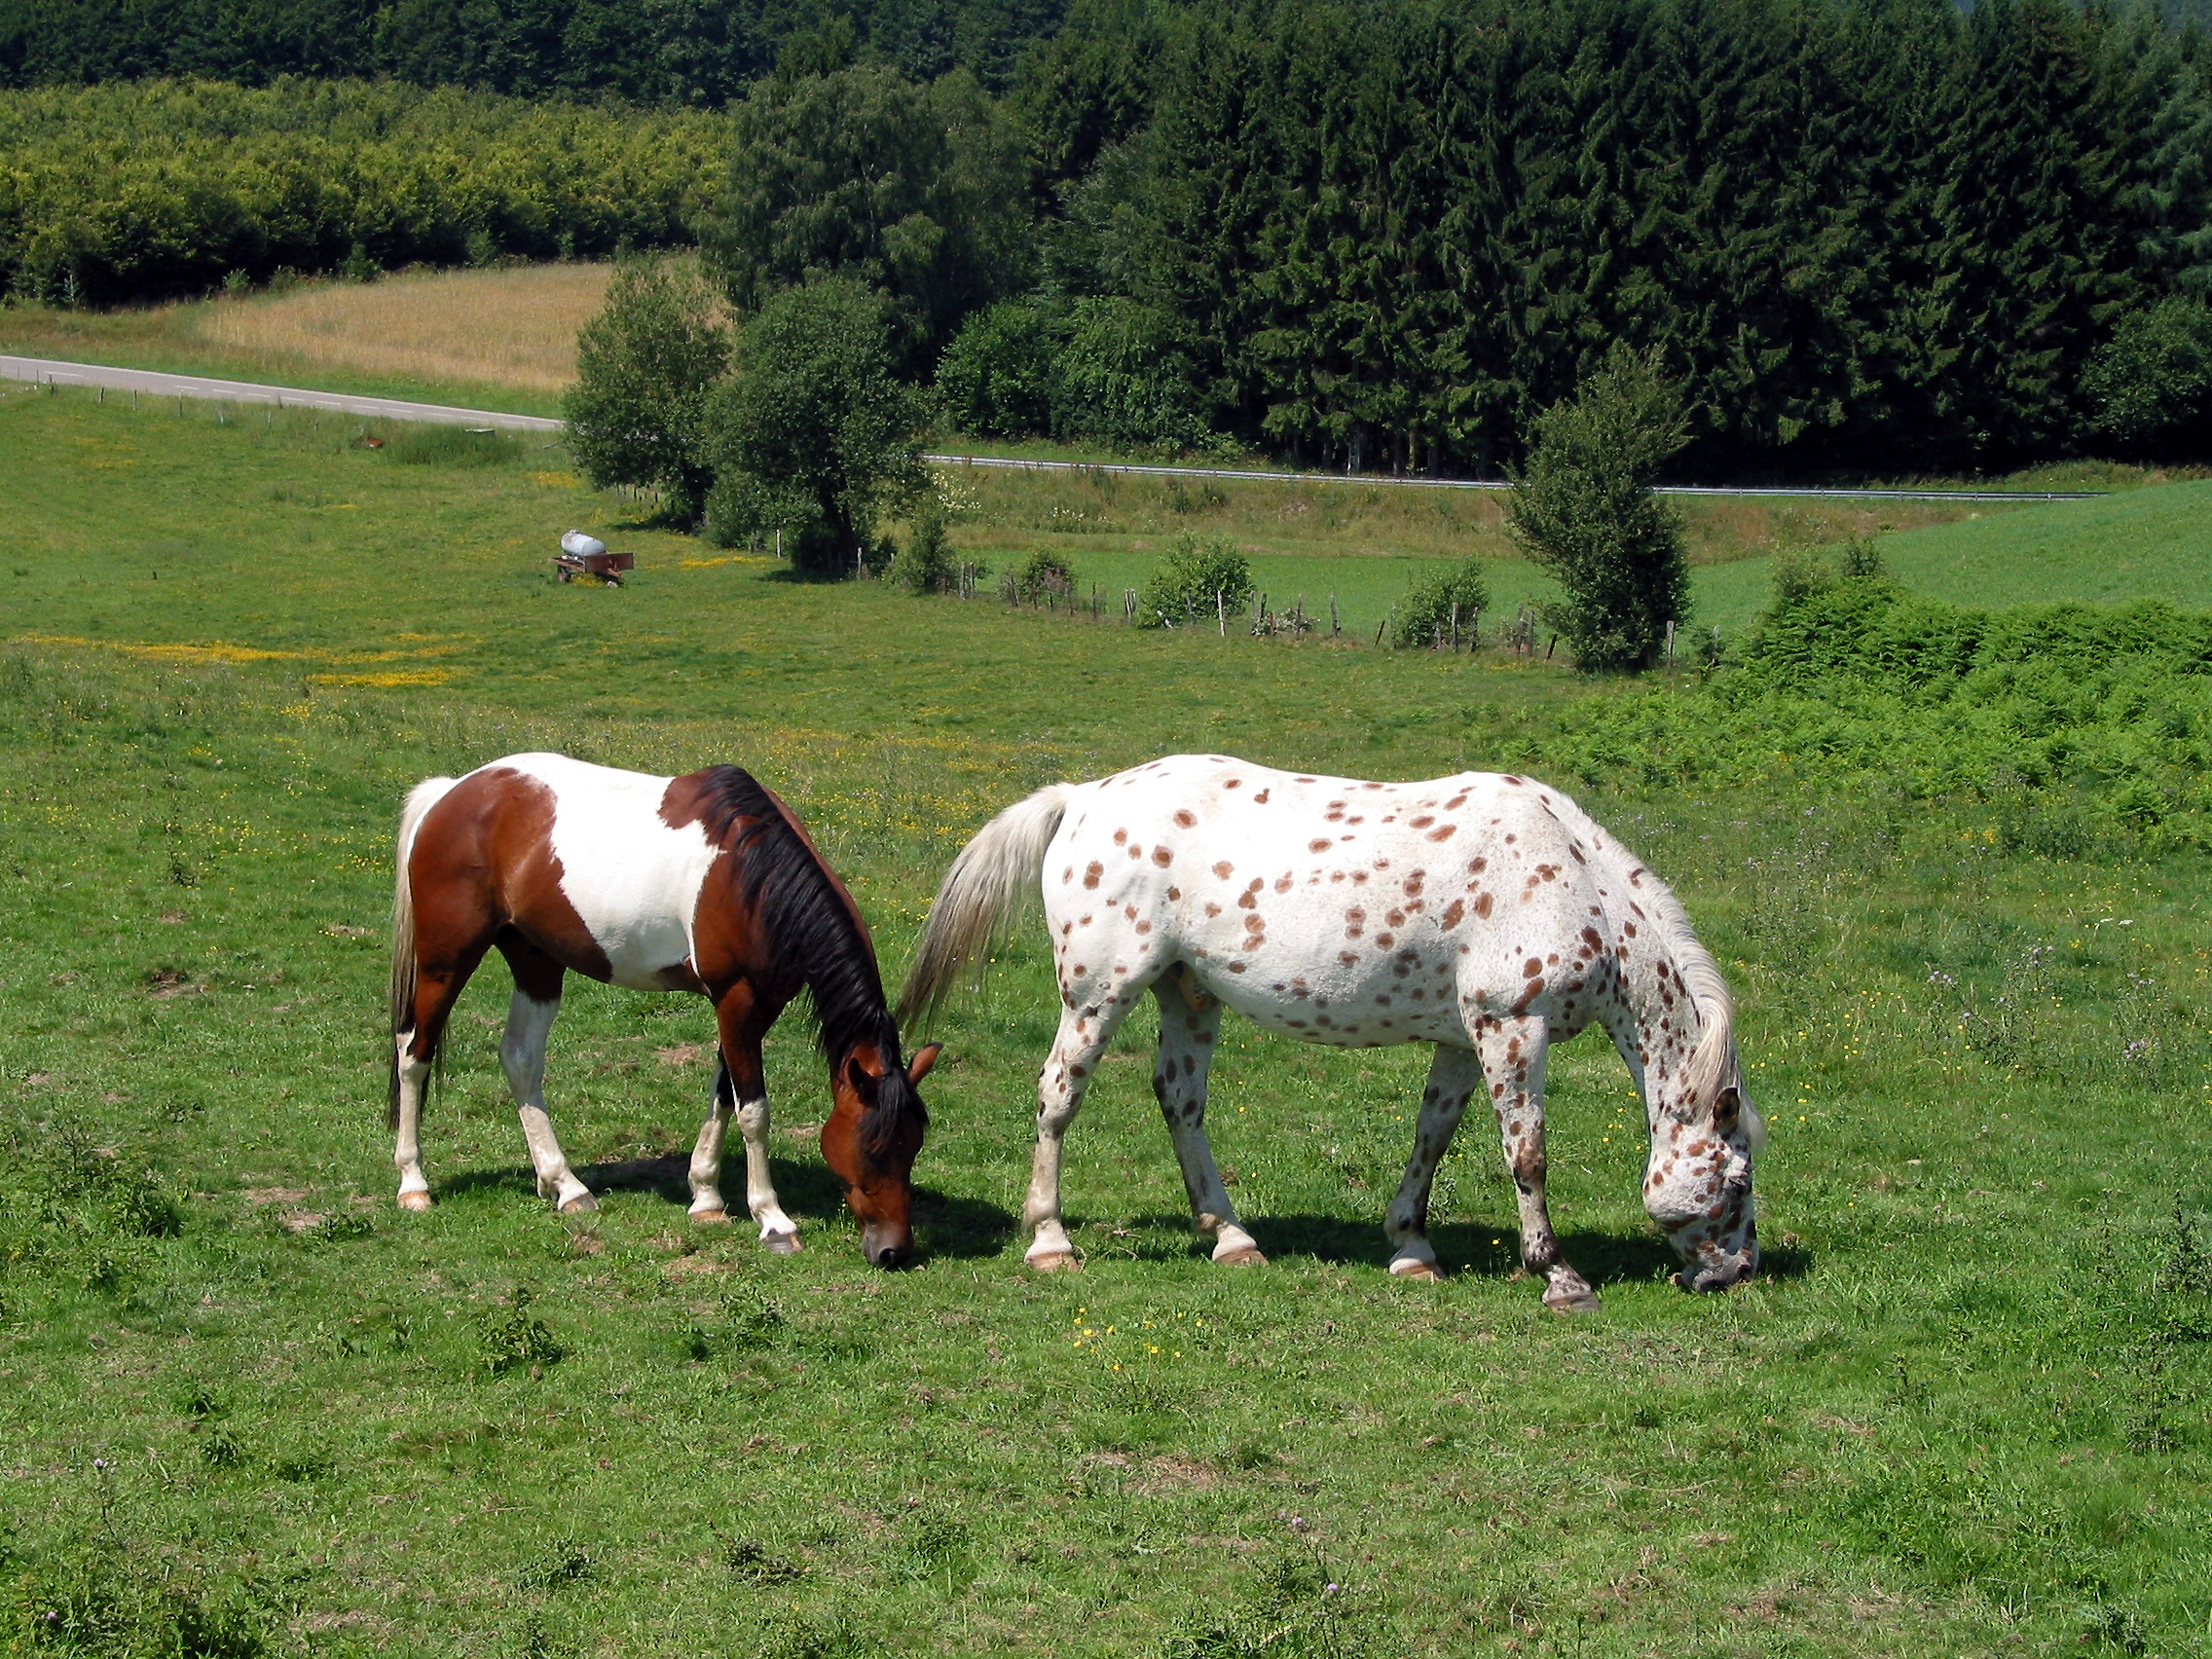 Paint and Appaloosa